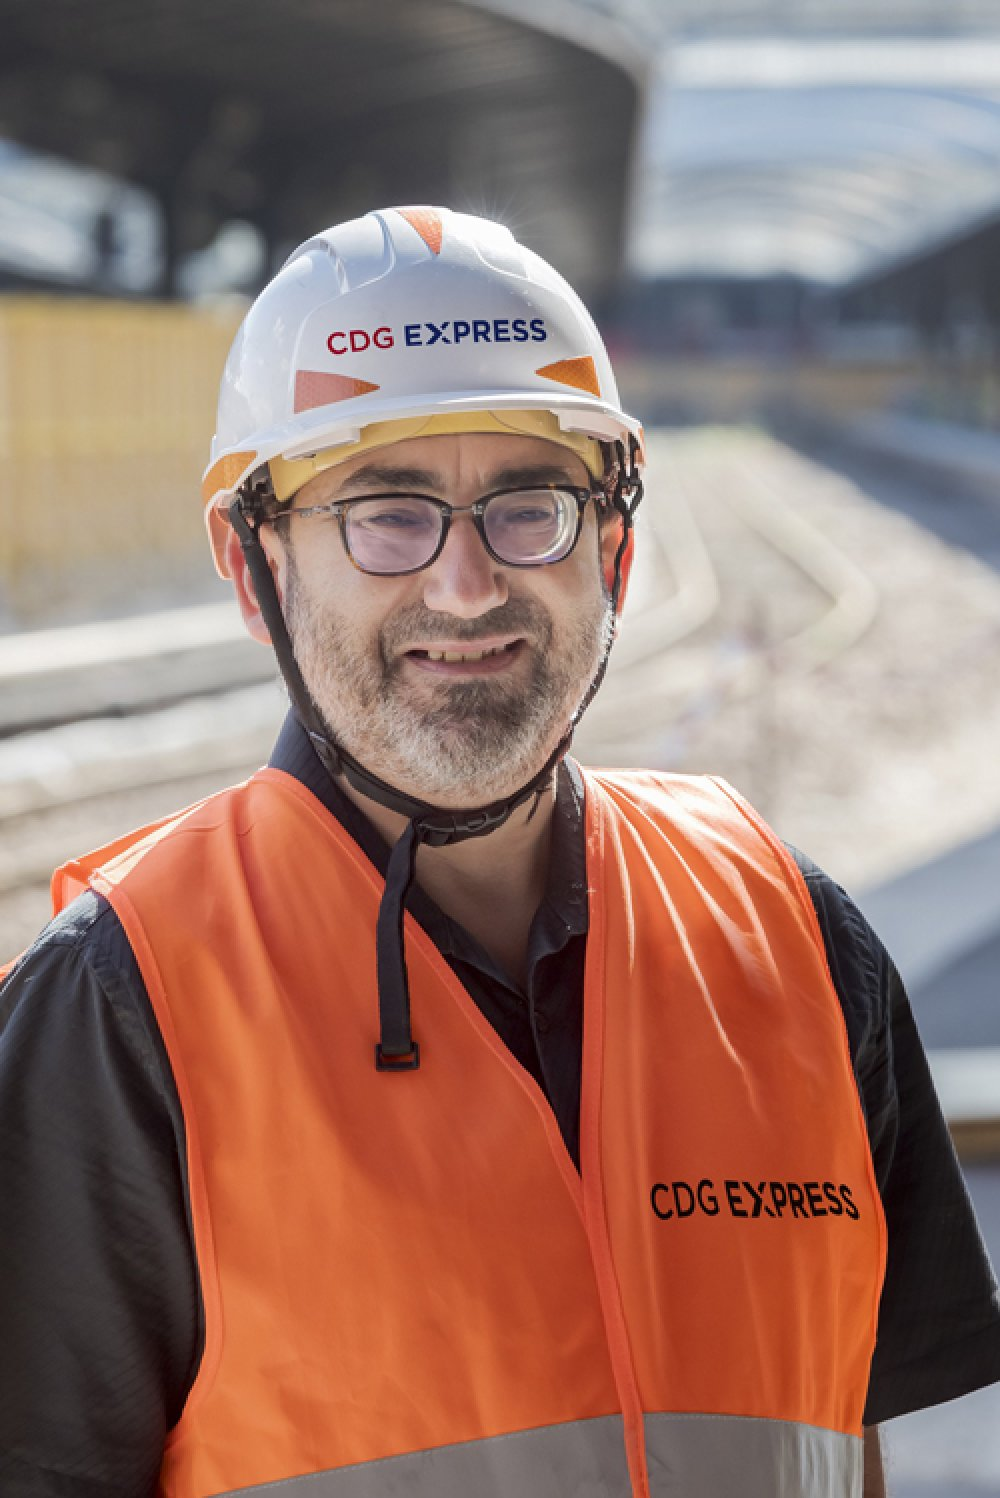 CDG Express - Agent Thierry Abid